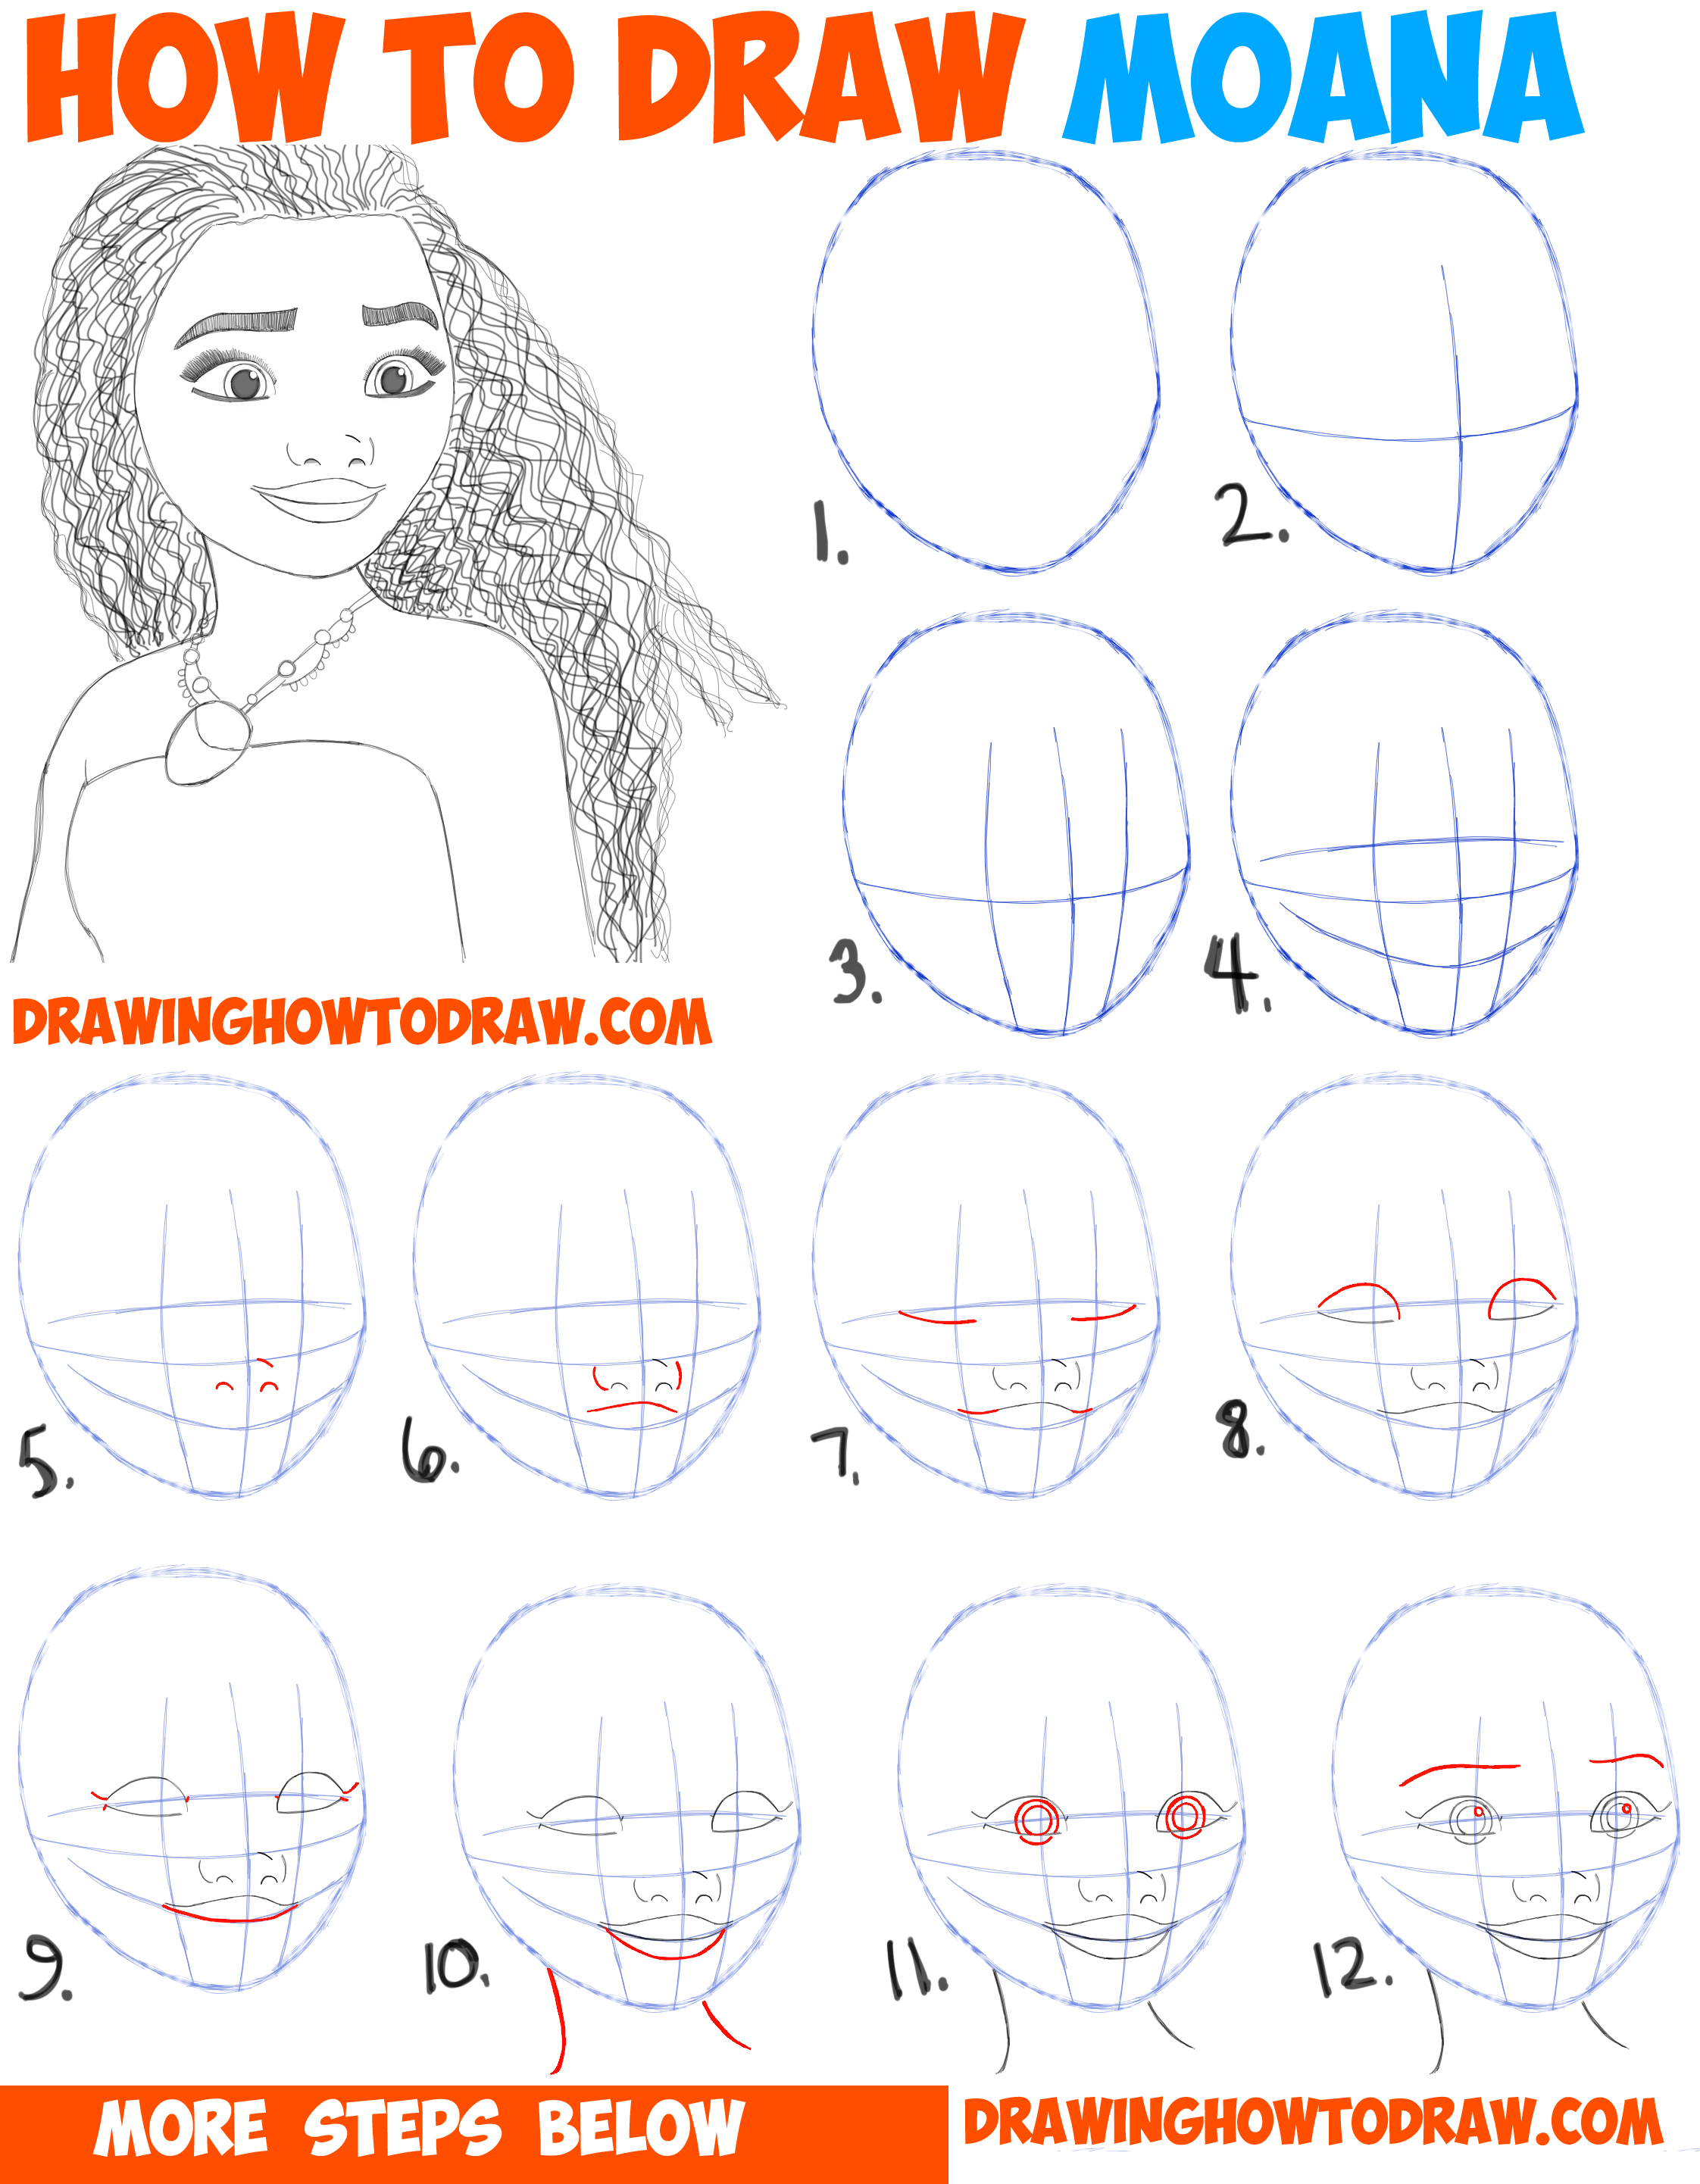 How to draw moana easy step by step drawing tutorial for for Things to draw for beginners step by step